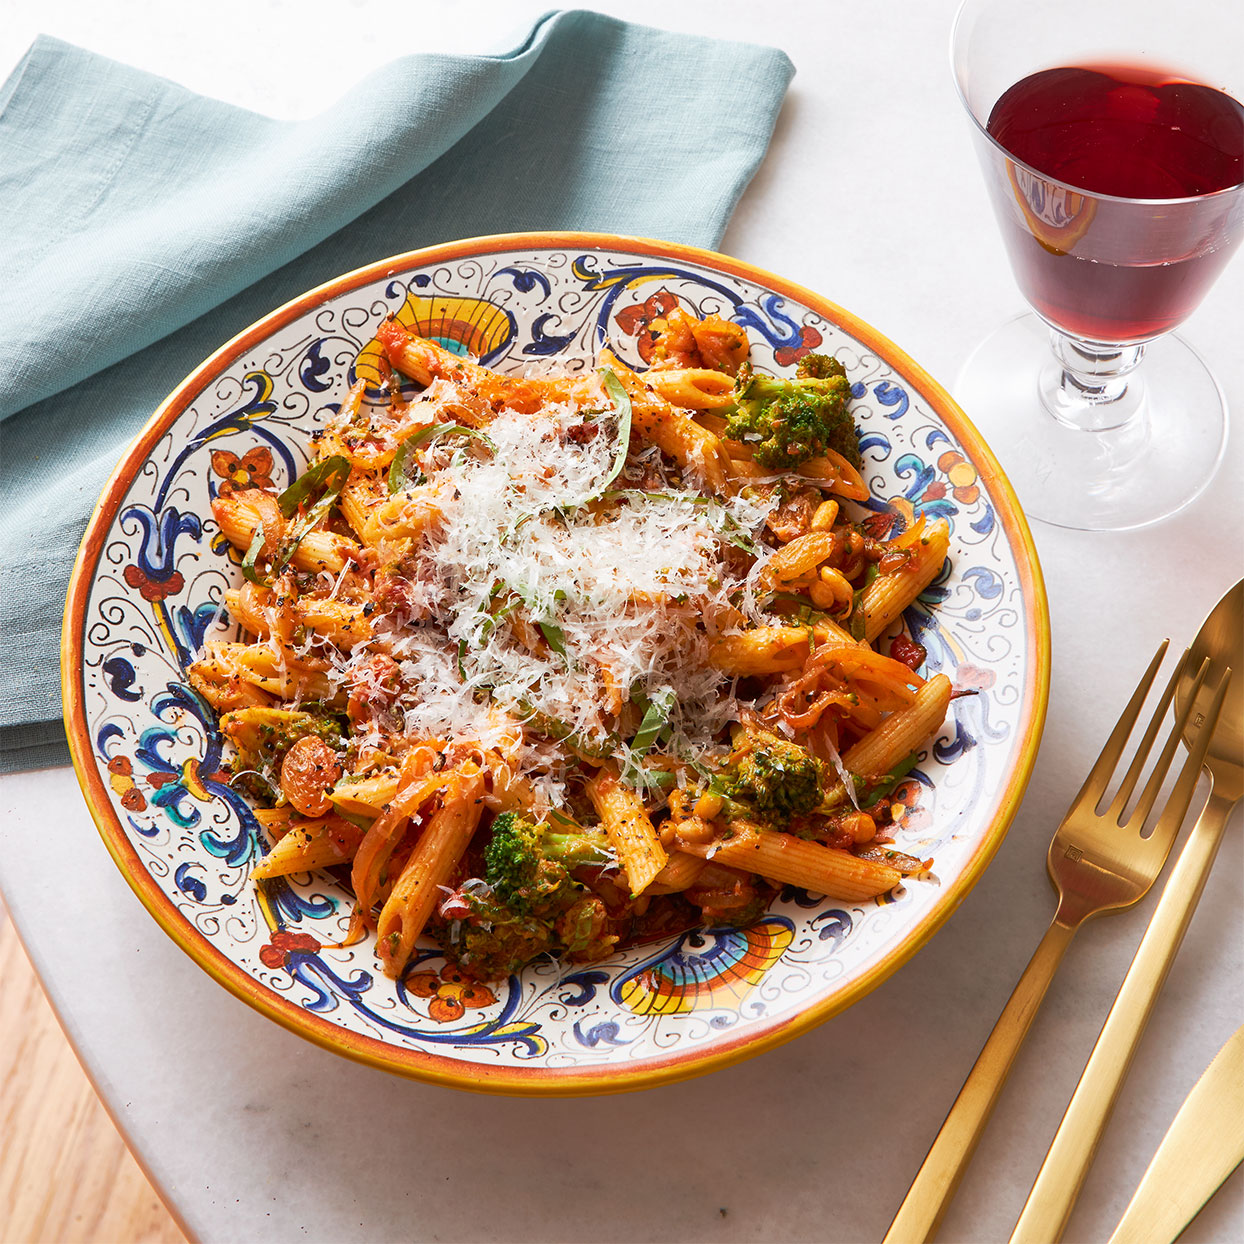 Pasta cui Vruccoli Ariminata (Lina's Pasta & Broccoli) Allrecipes Trusted Brands